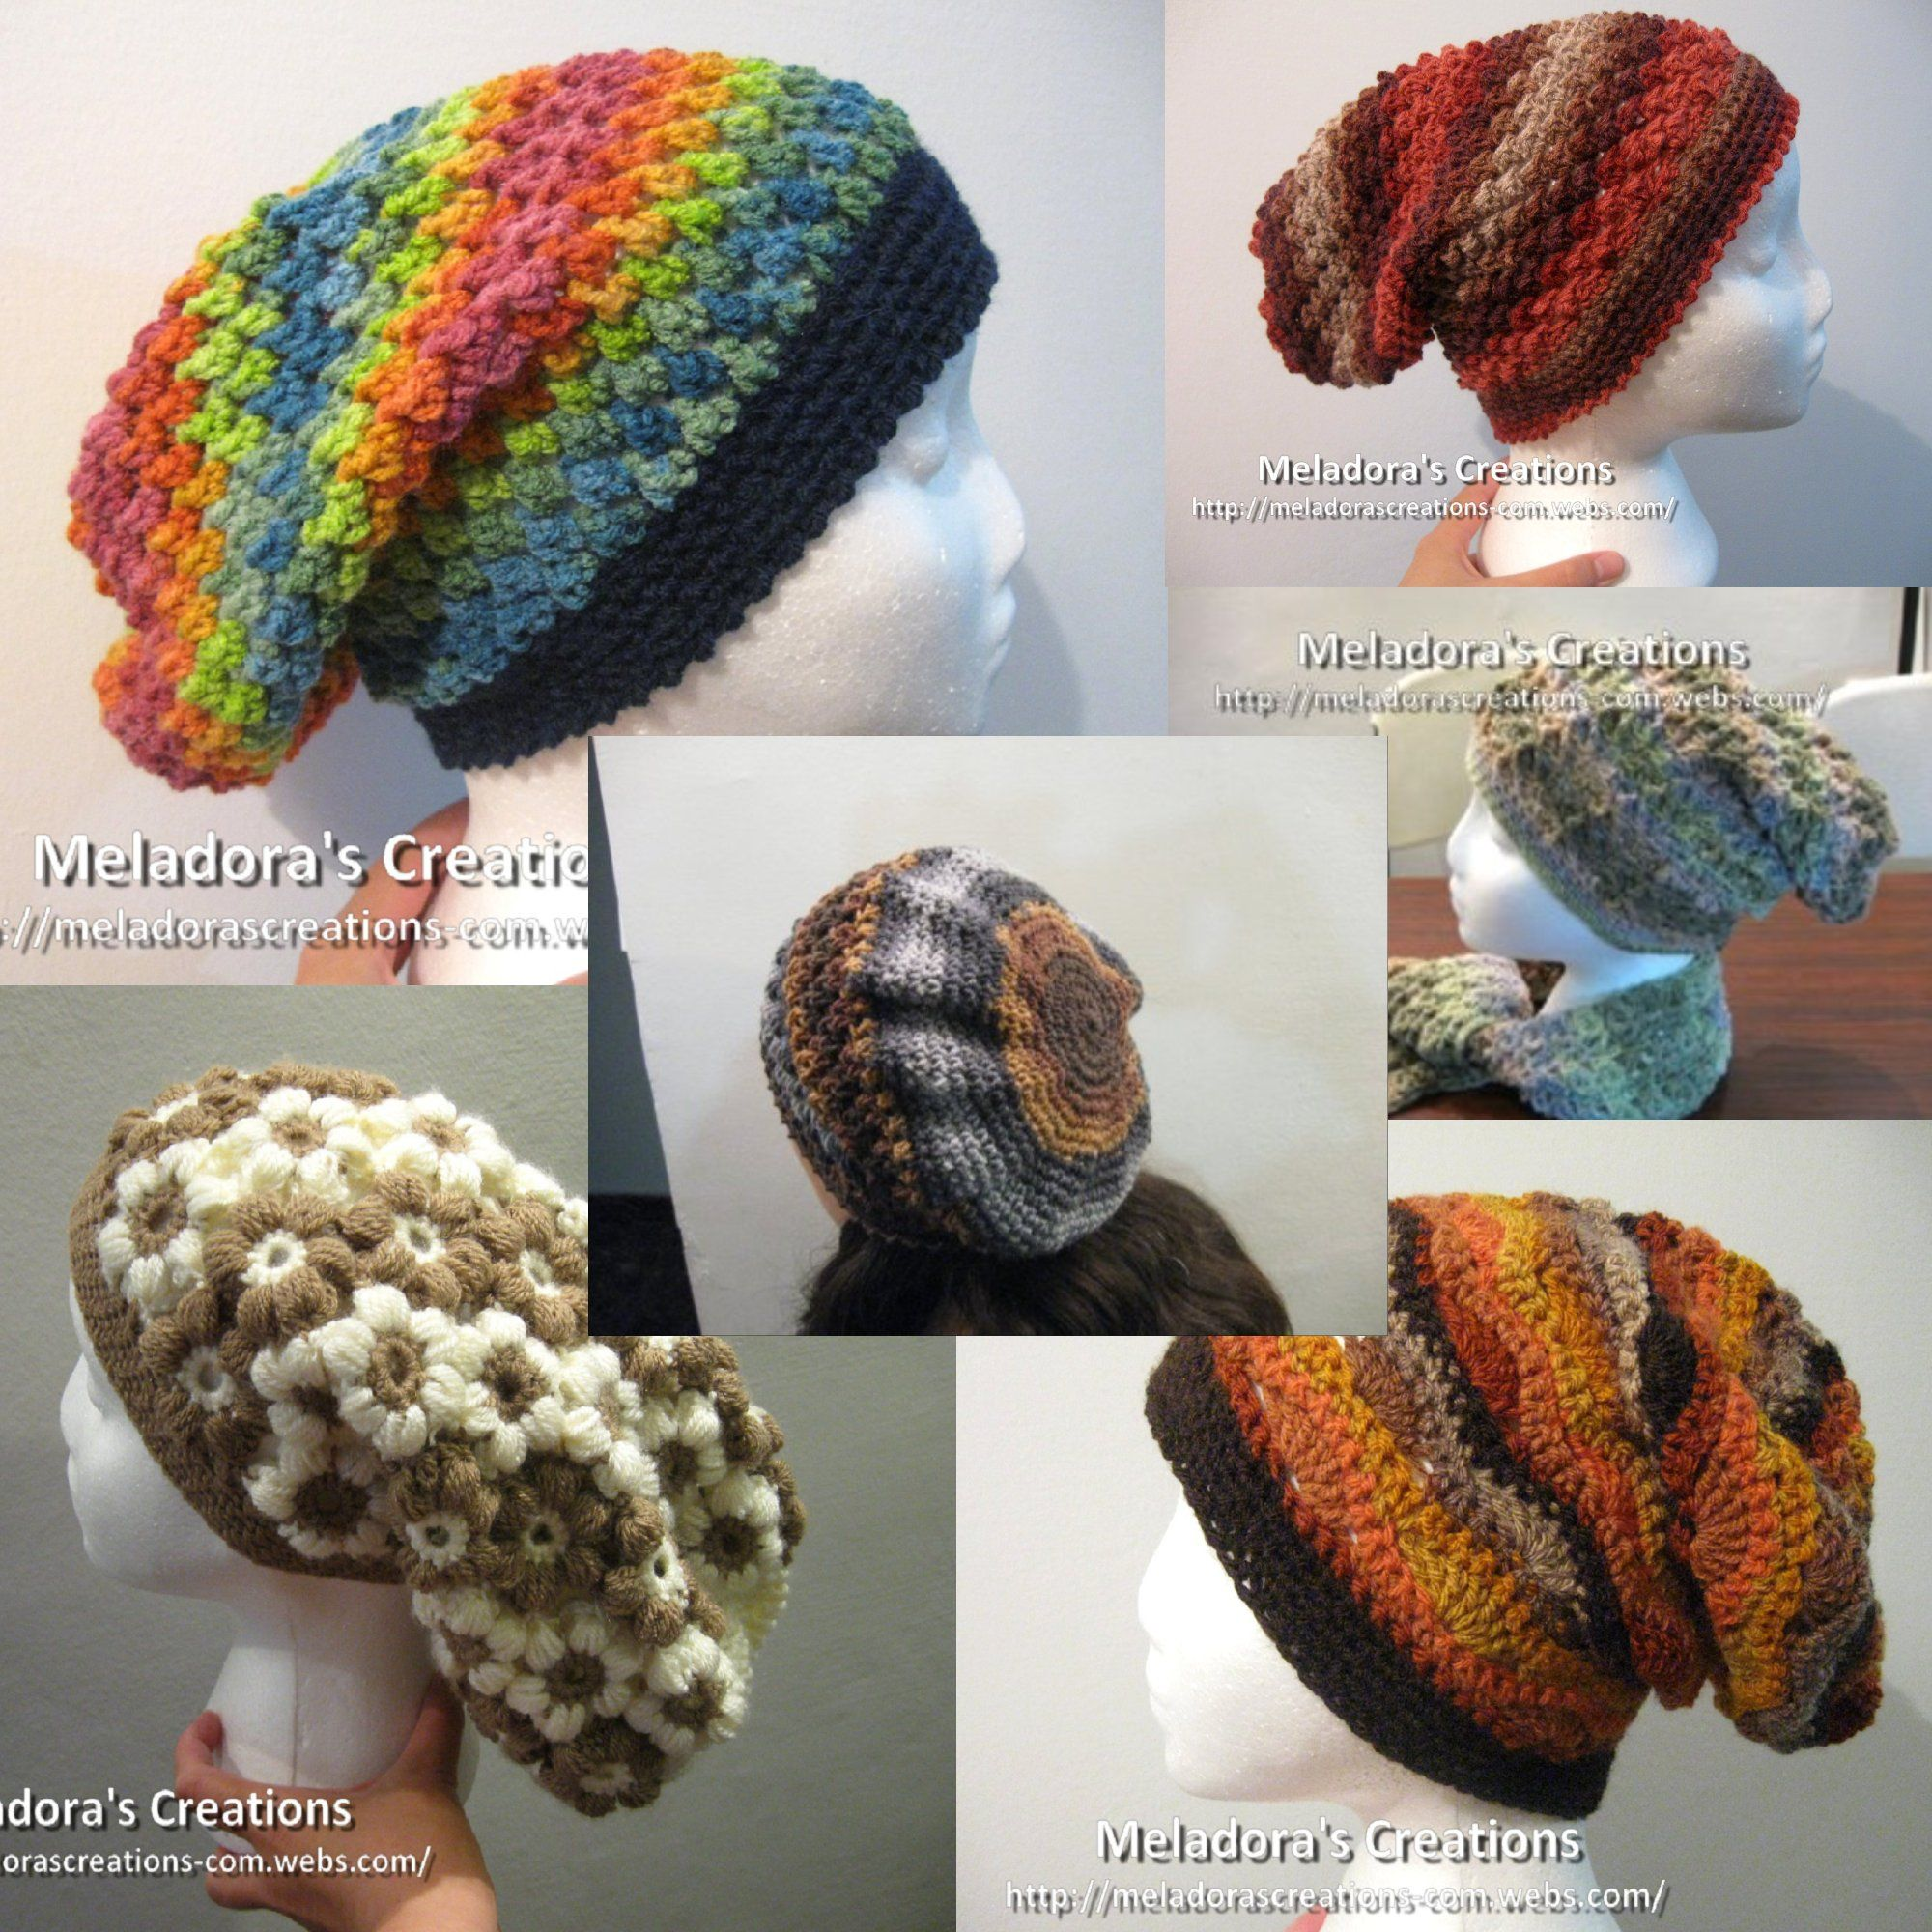 10 slouch hat crochet patterns with video tutorials meladoras 10 slouch hat crochet patterns with video tutorials meladoras creations baditri Image collections